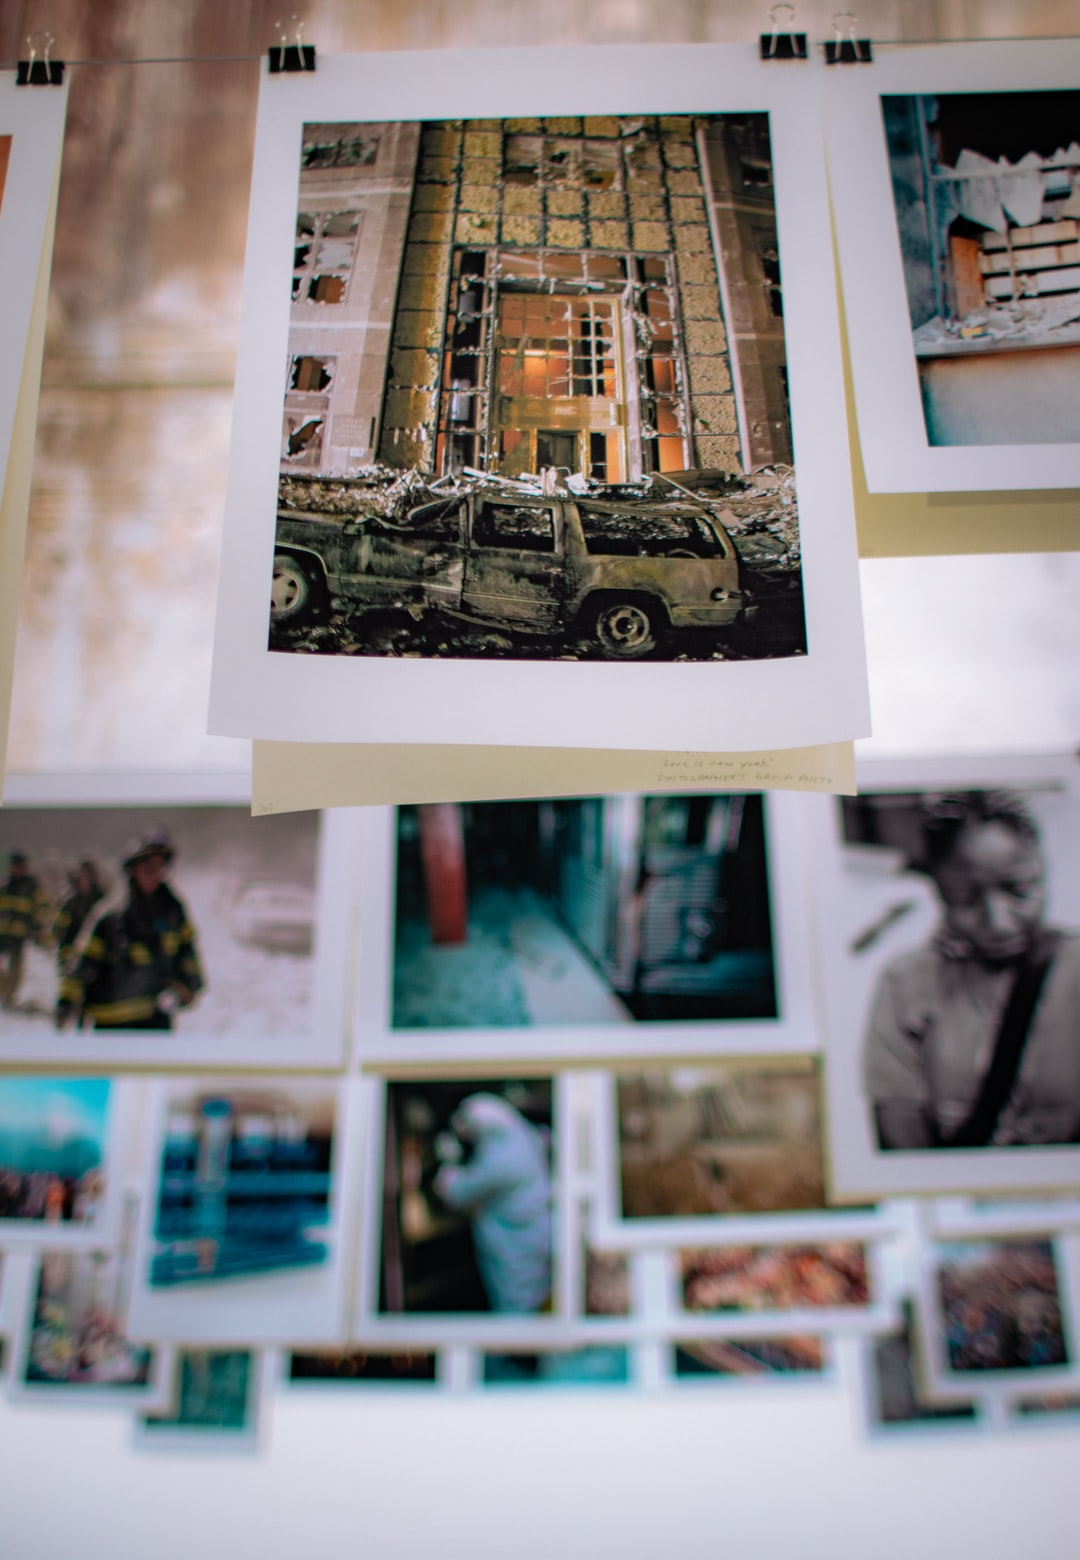 9/11 photographs exhibition at photography festival Rencontres Arles 2019